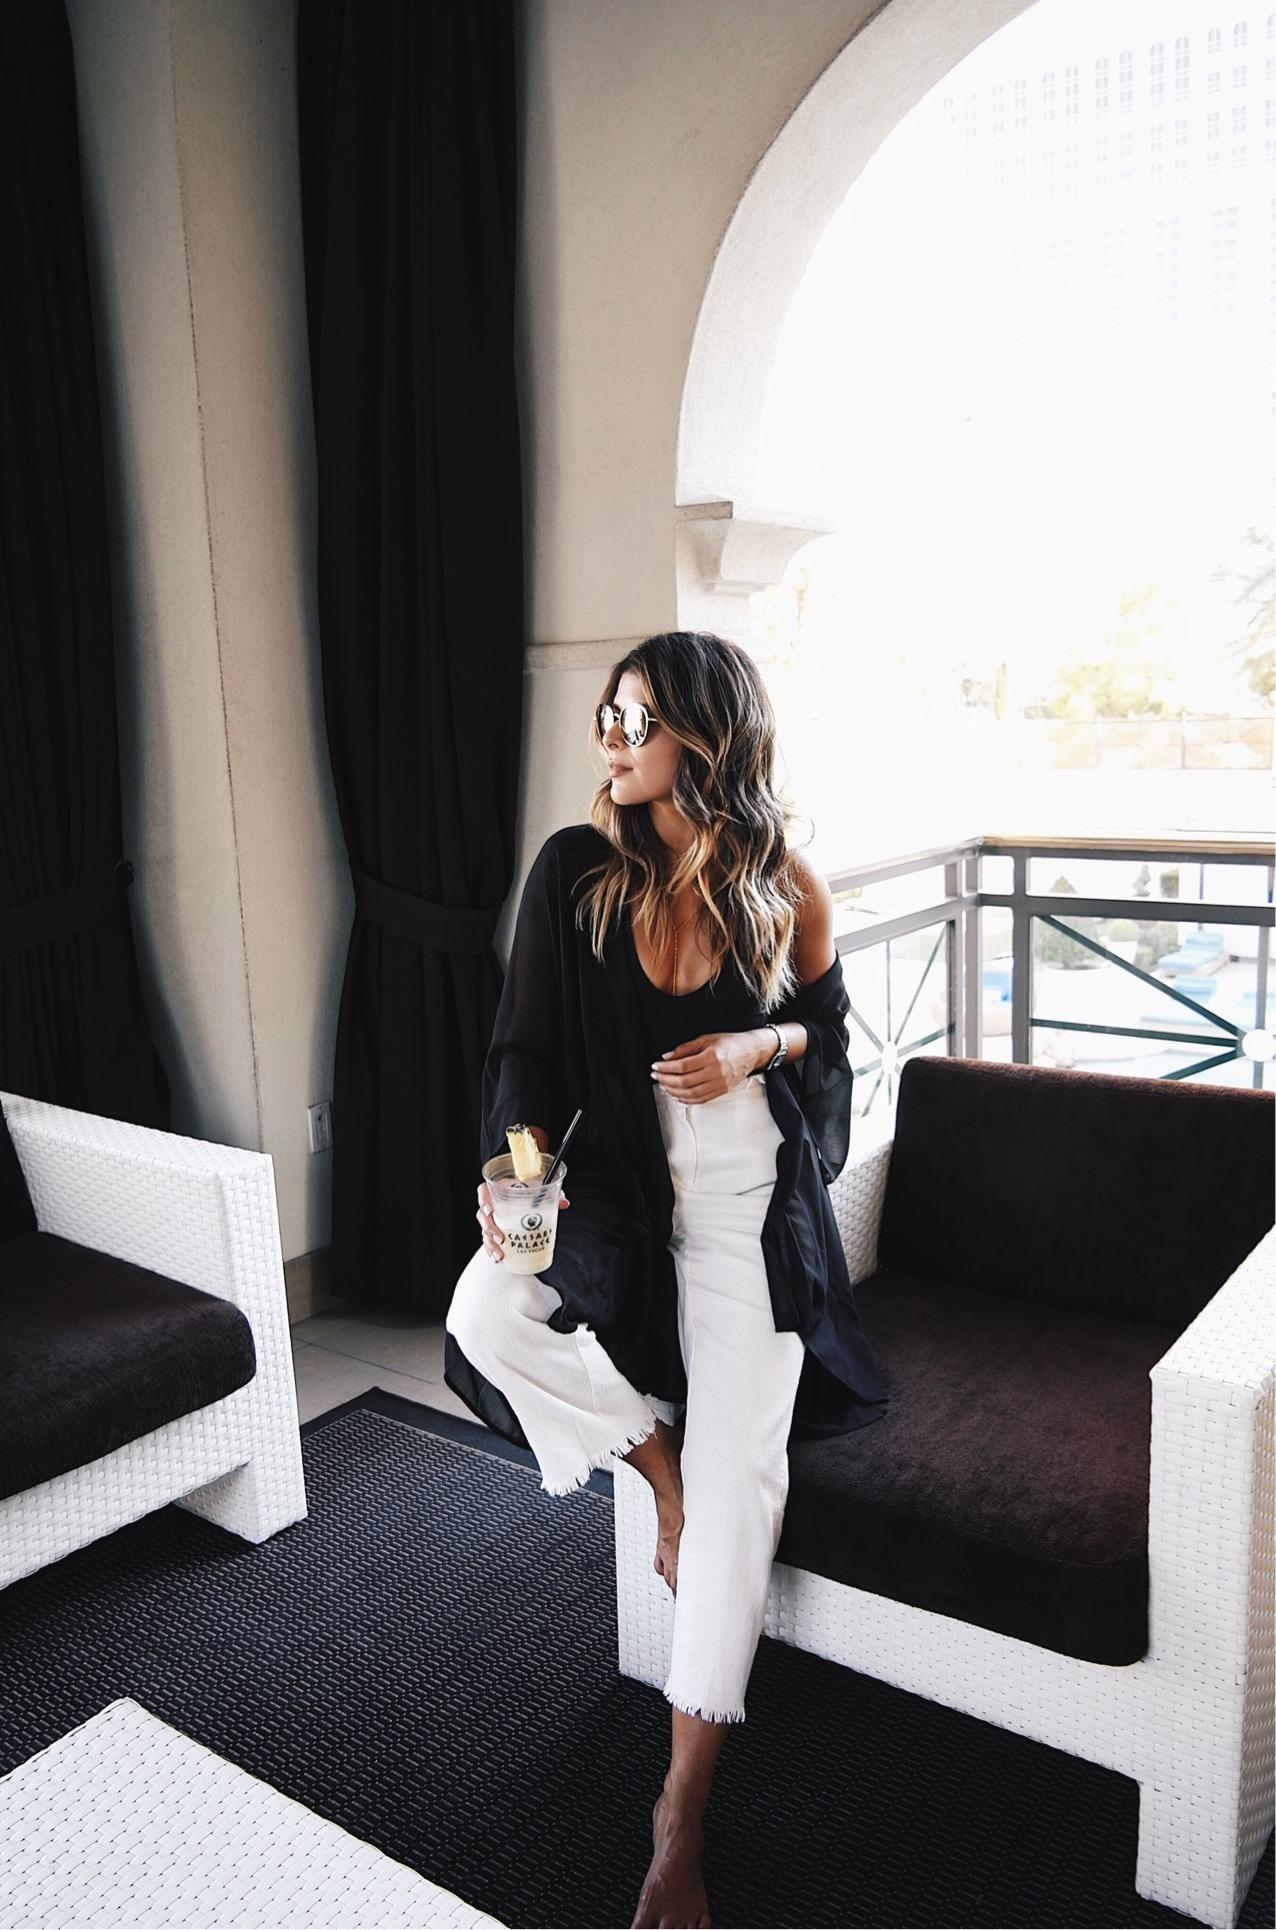 5 ways to look stylish in las Vegas // The Girl From Panama @pamhetlinger